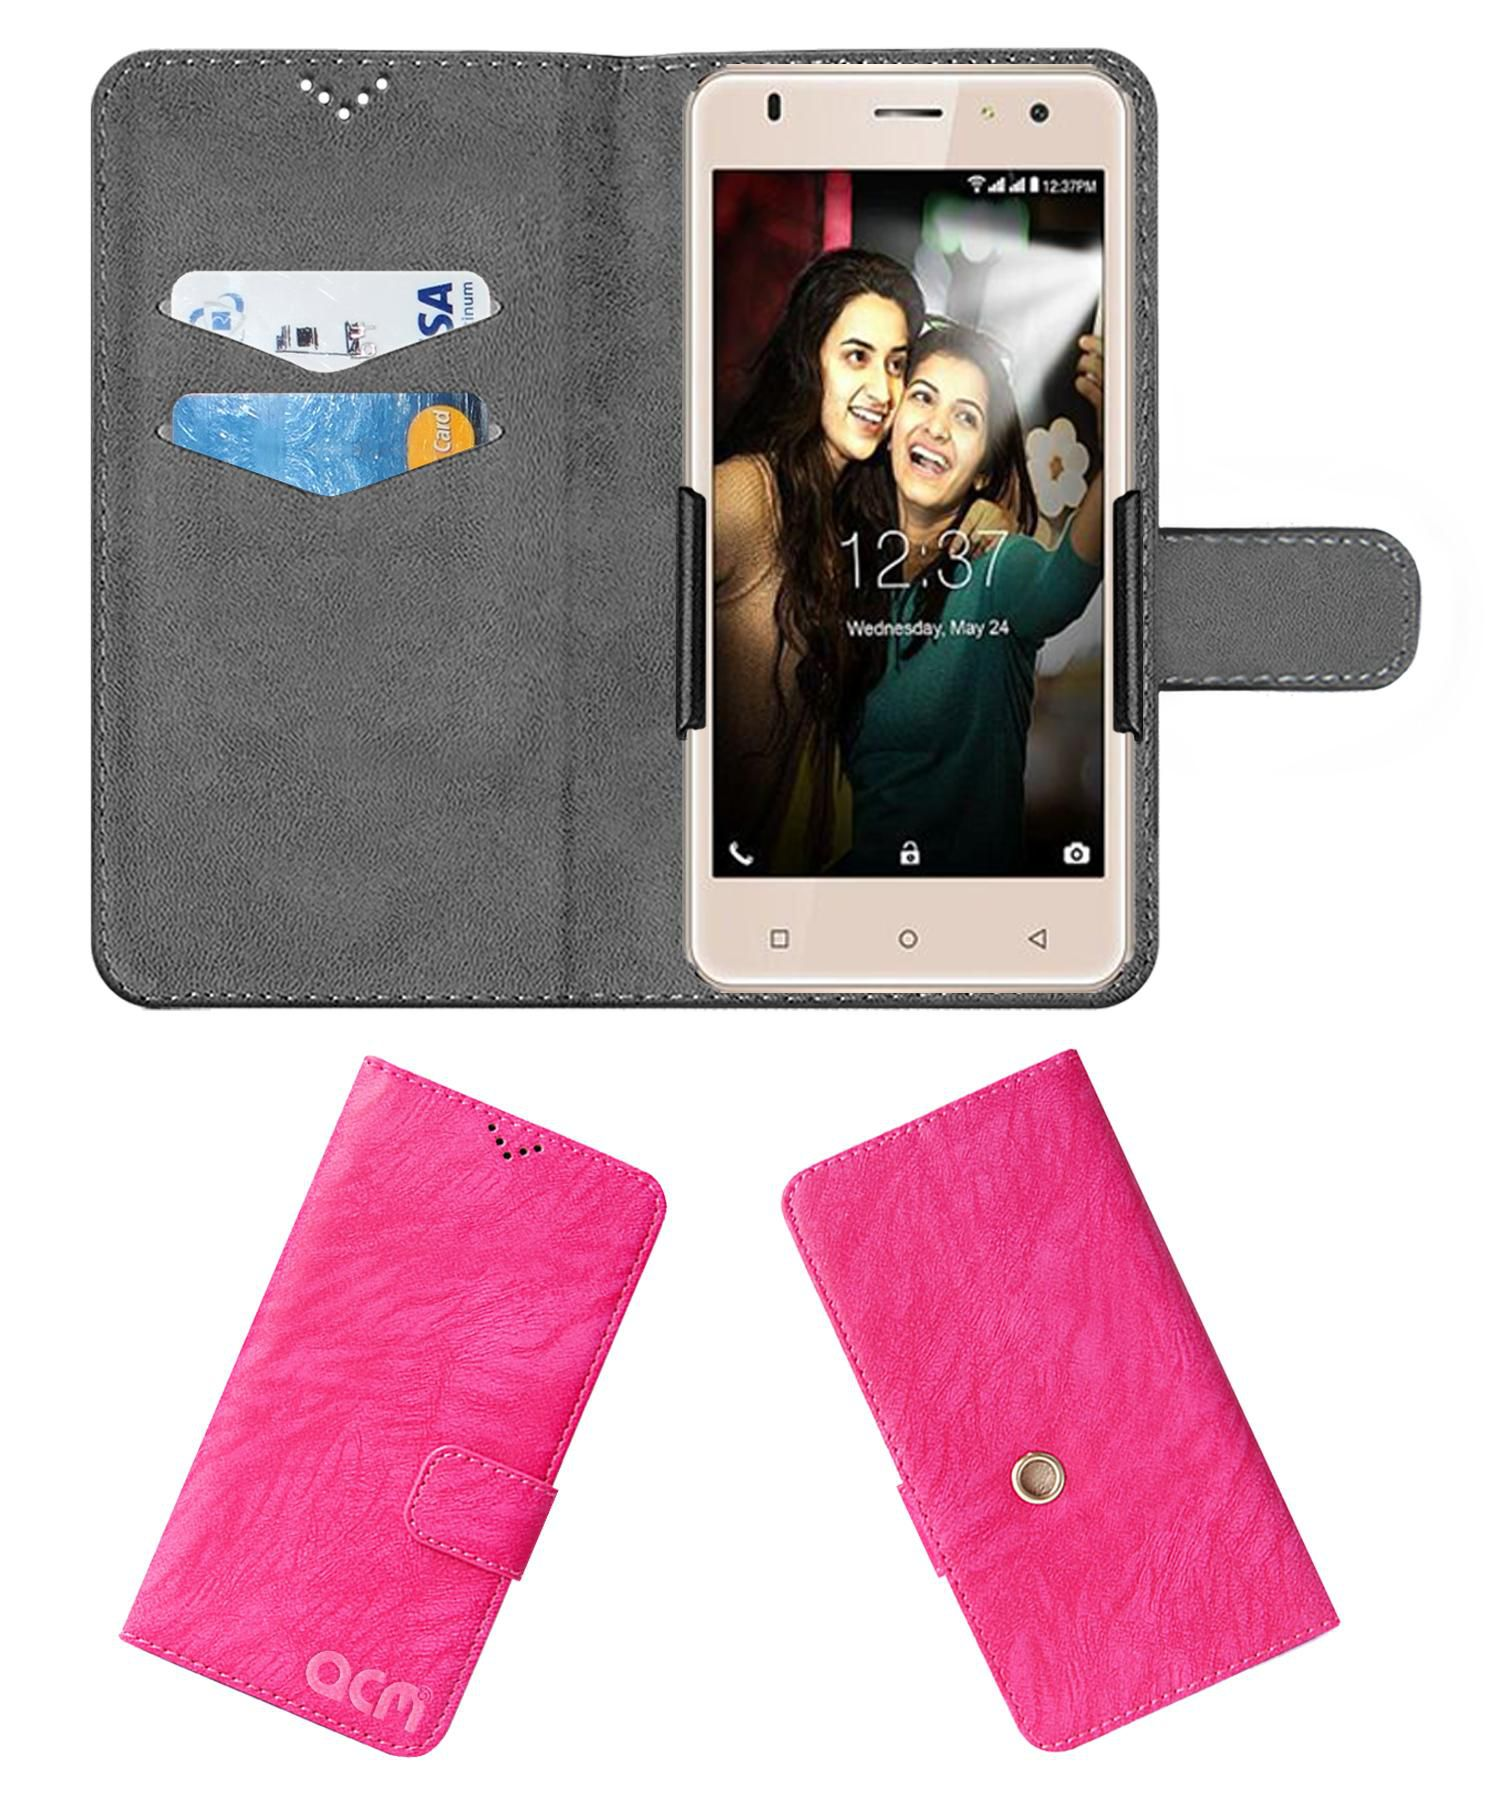 Intex Aqua S3 Flip Cover by ACM - Pink Clip holder to hold your mobile securely